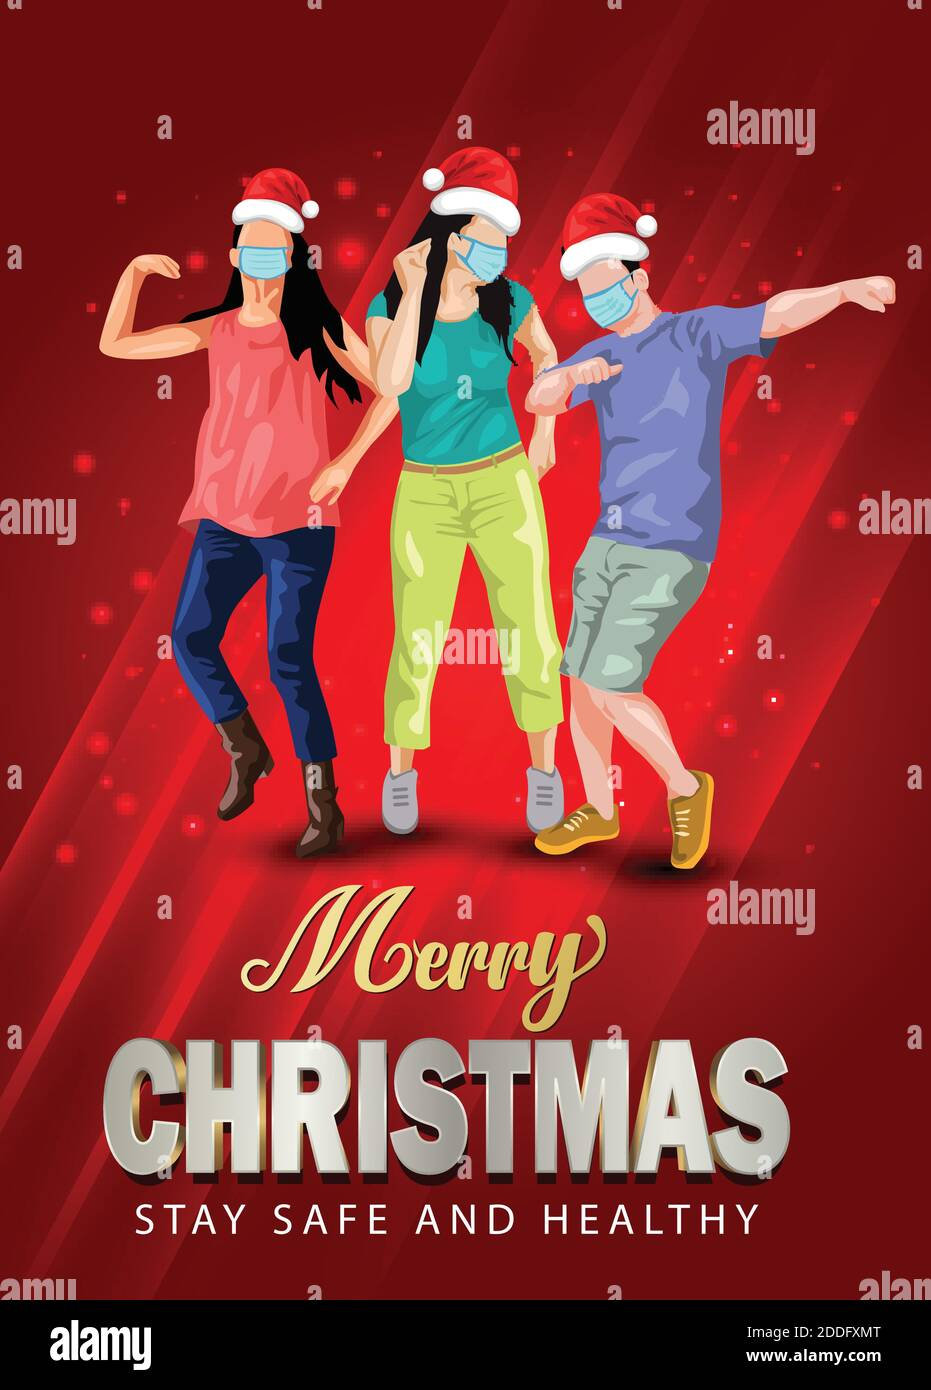 Merry Christmas Dance Night Party Flyer Design With Group Of People Dancing With Santa Hand And Wearing Surgical Mask Coronavirus Covid 19 Concept Stock Vector Image Art Alamy